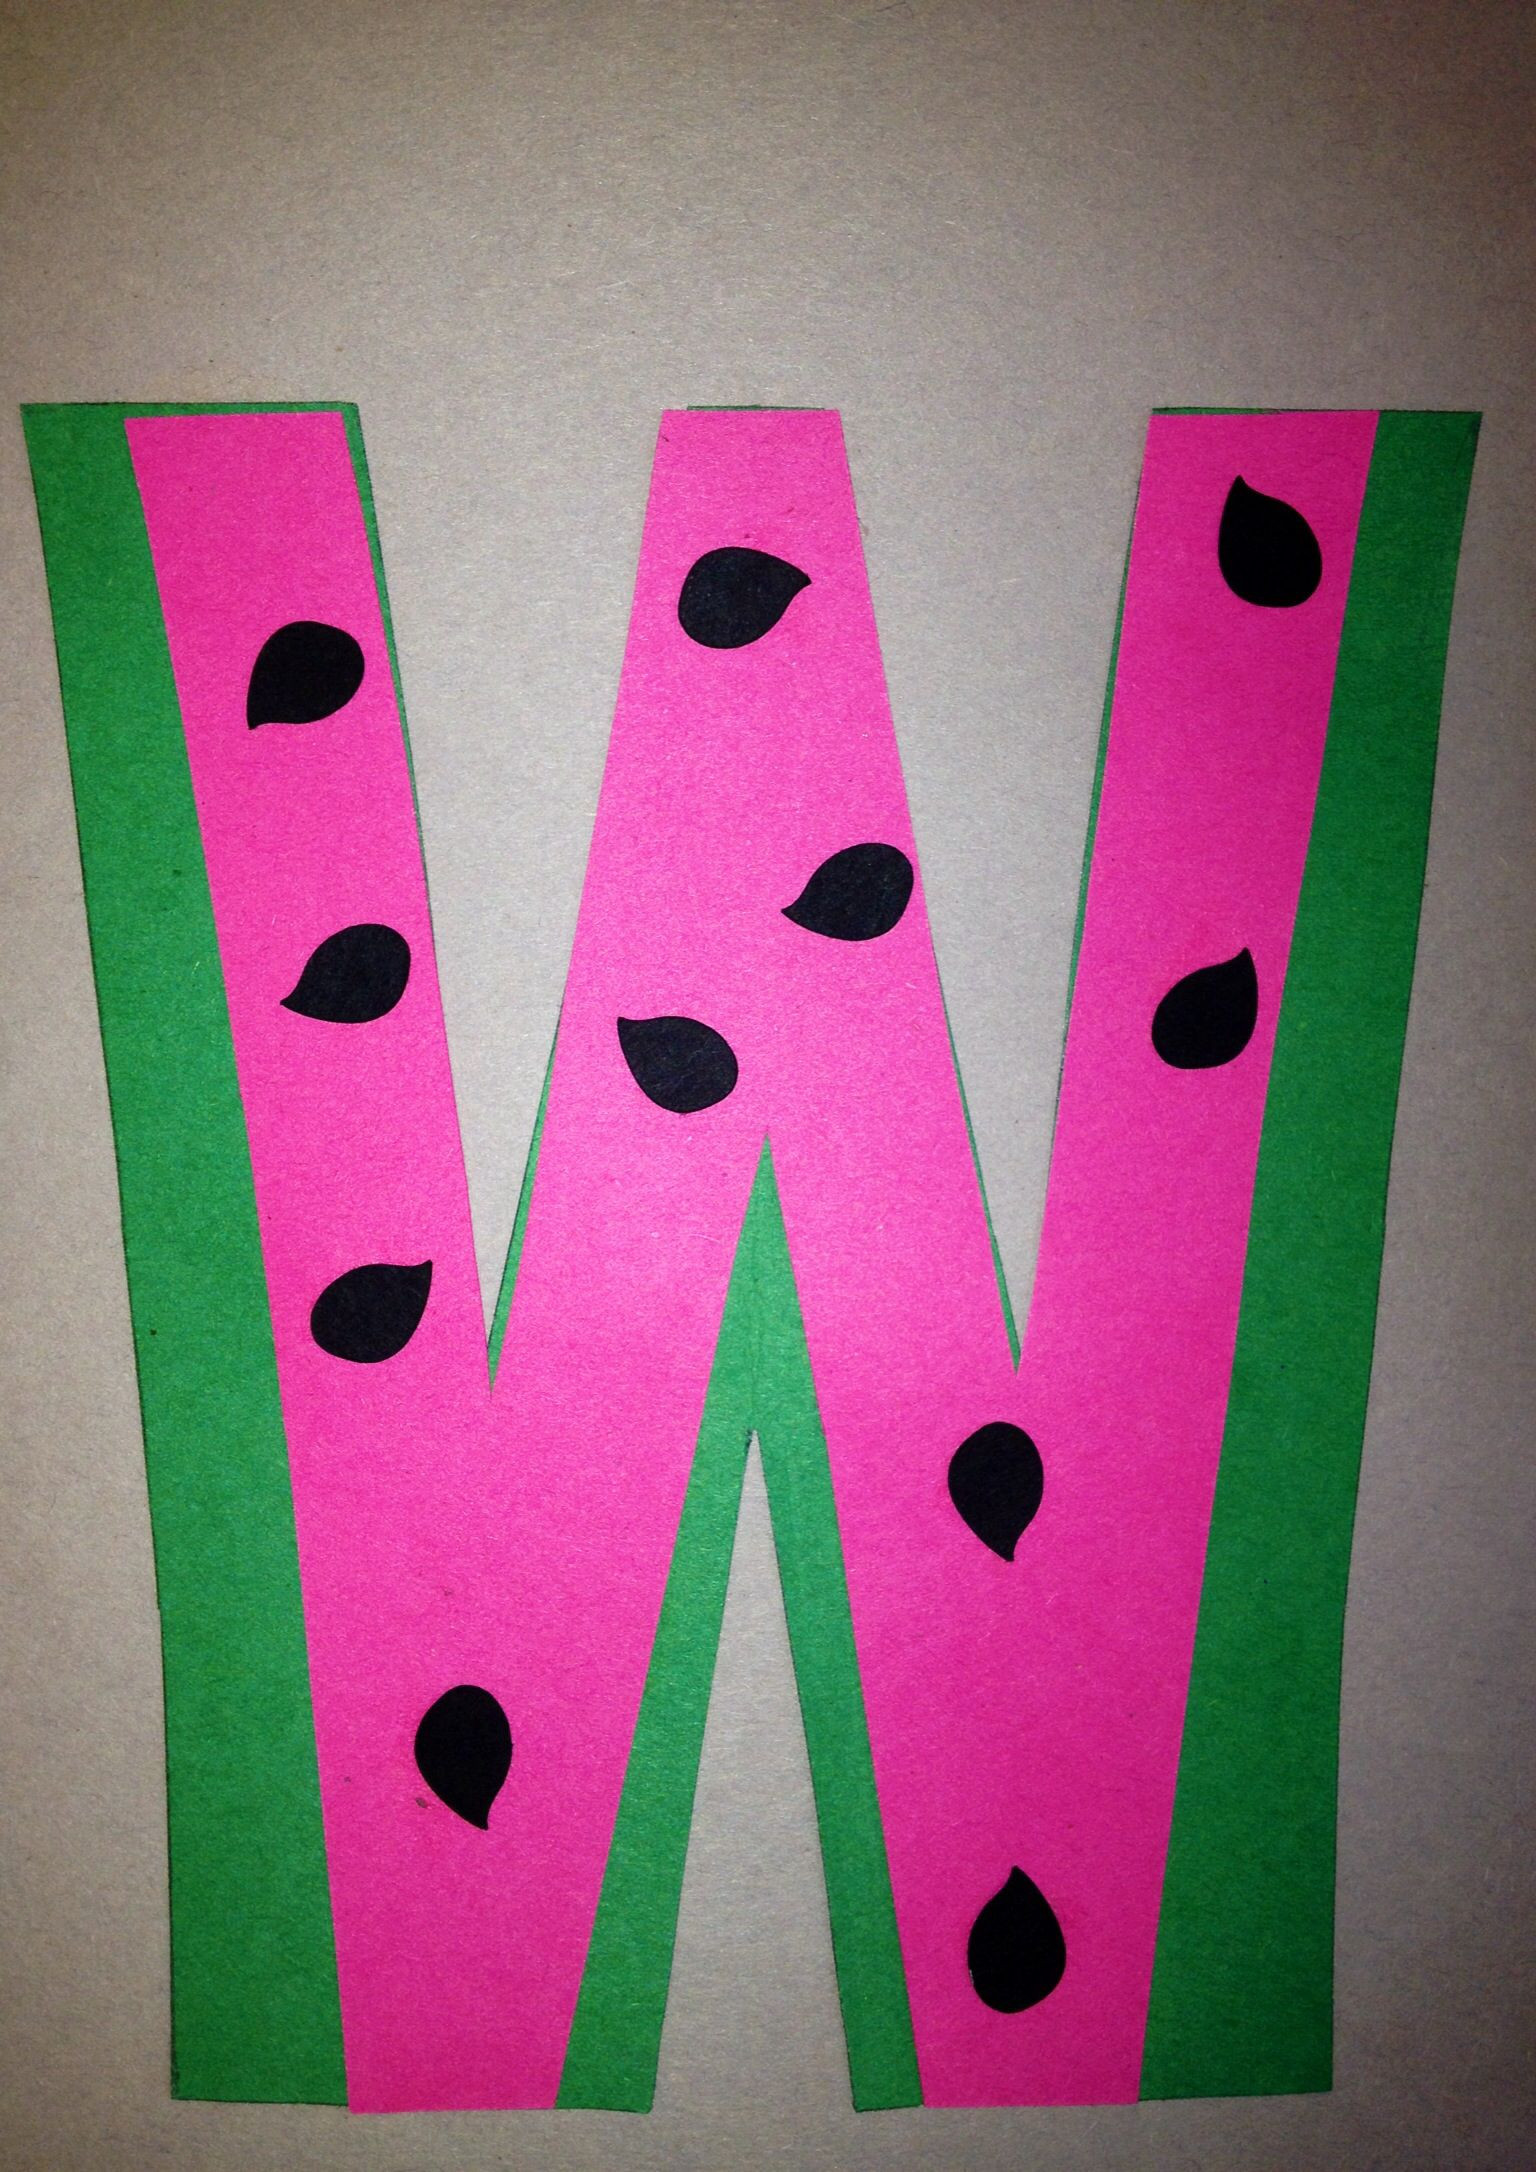 Best ideas about W Crafts For Preschoolers . Save or Pin Preschool Letter W Craft Now.